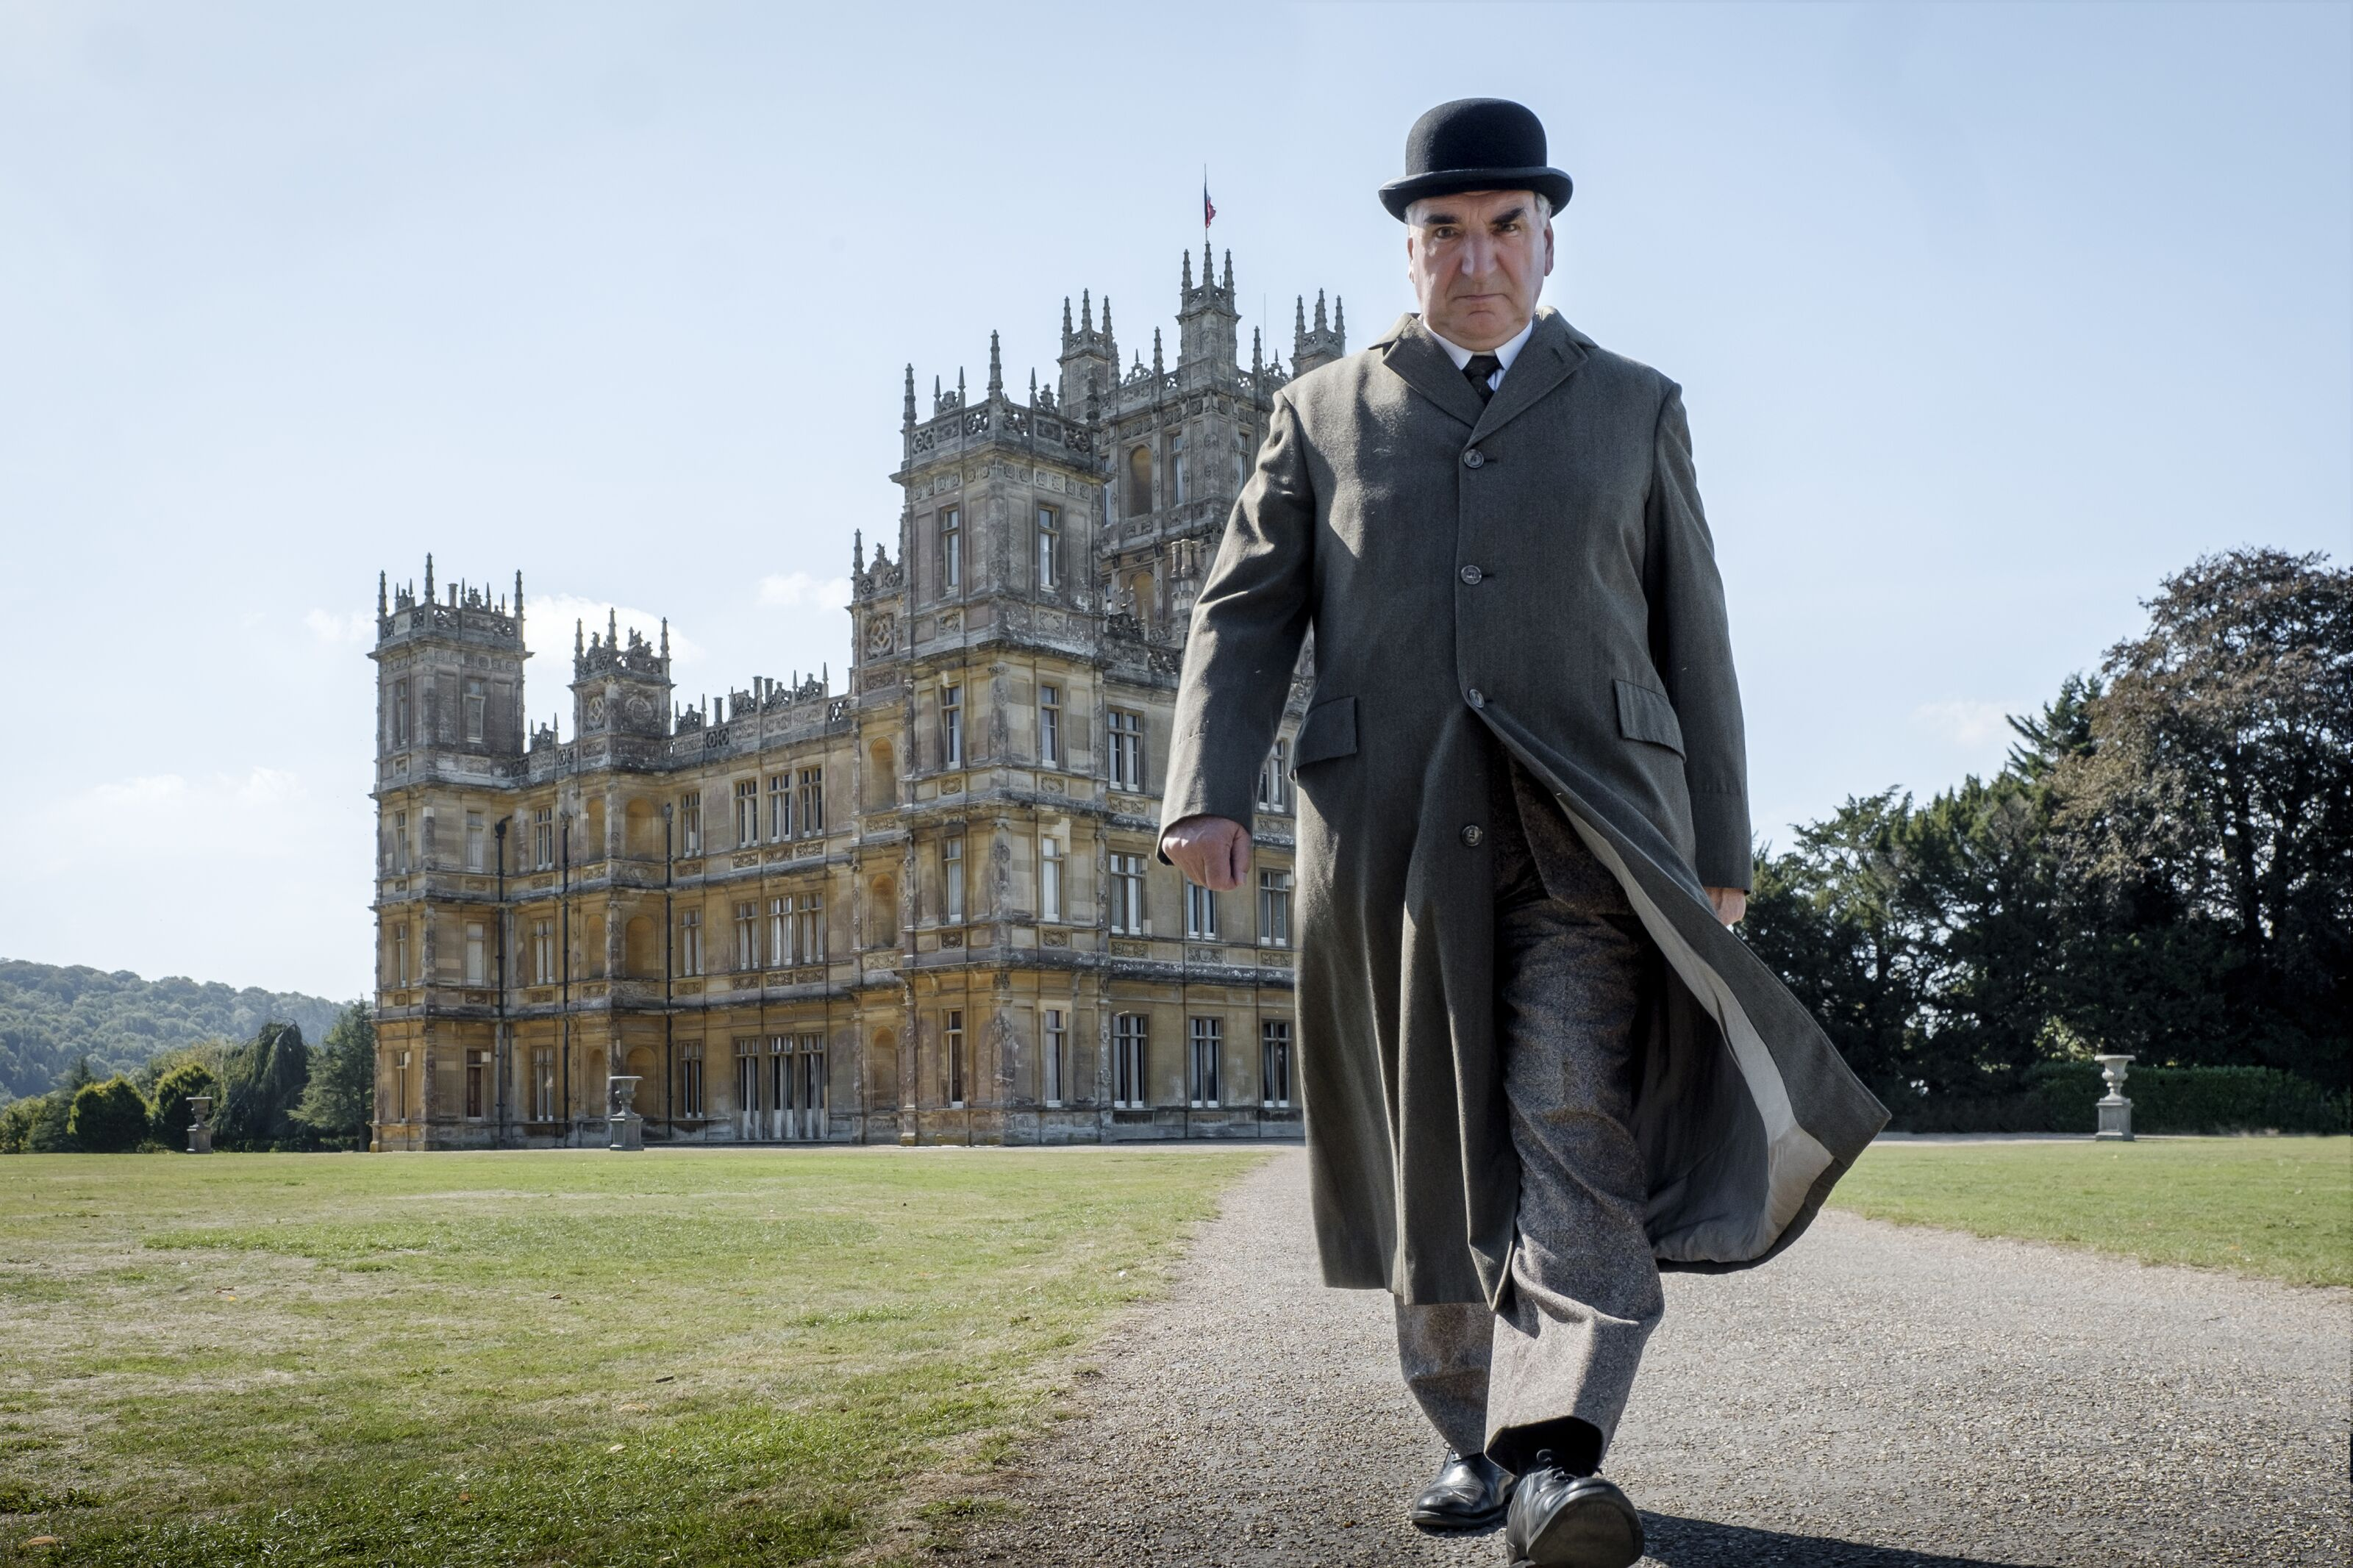 Step into the Downton Abbey world with this special vacation experience